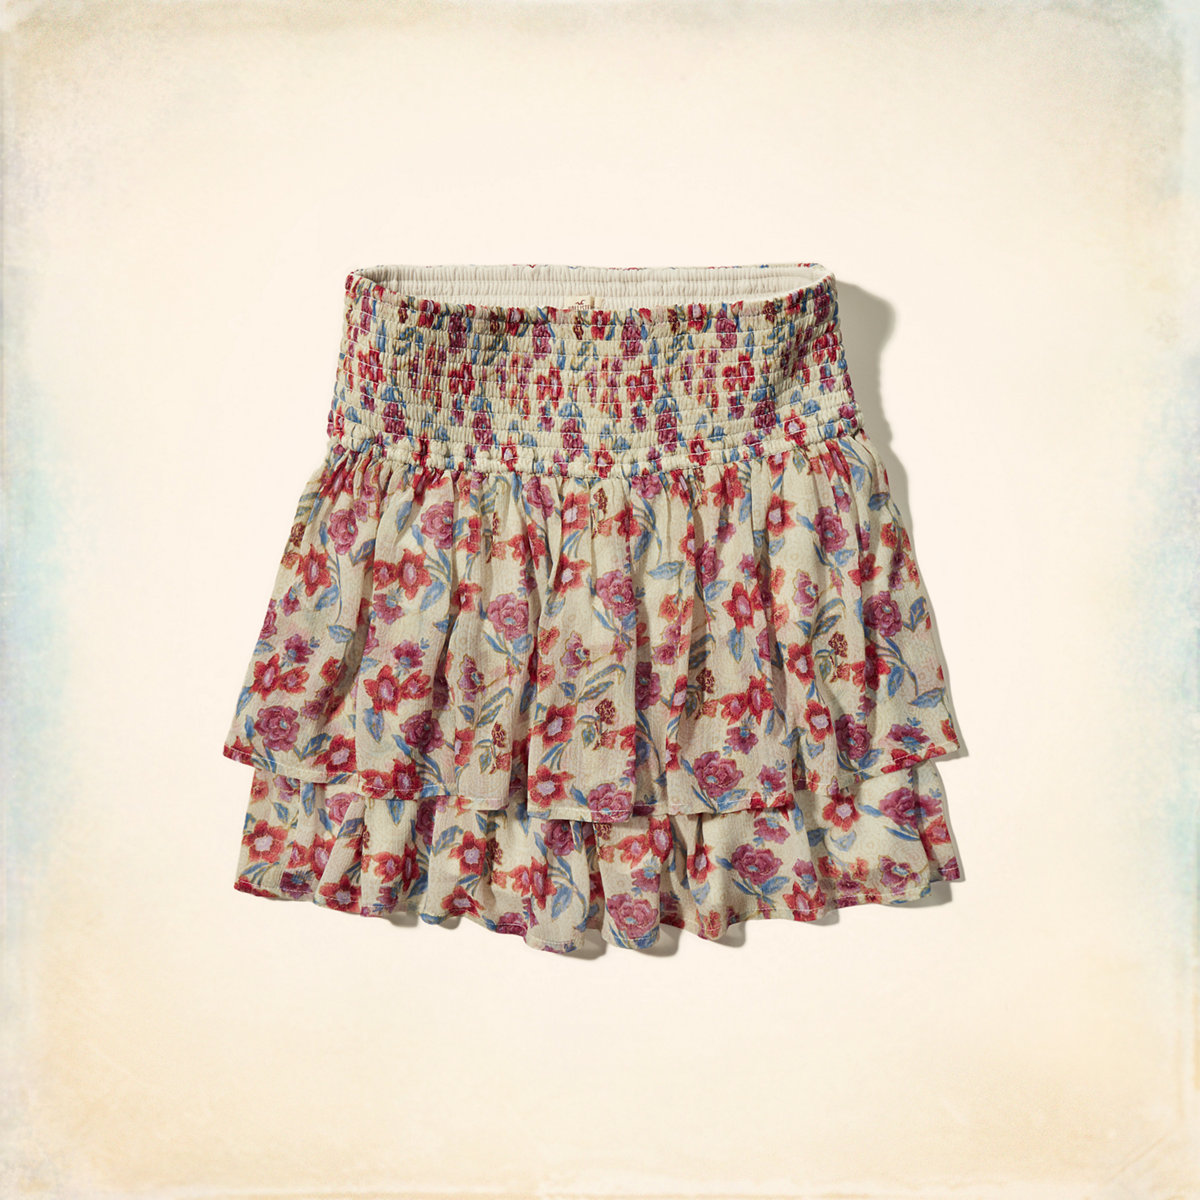 Tiered Smocked-Waist Skirt